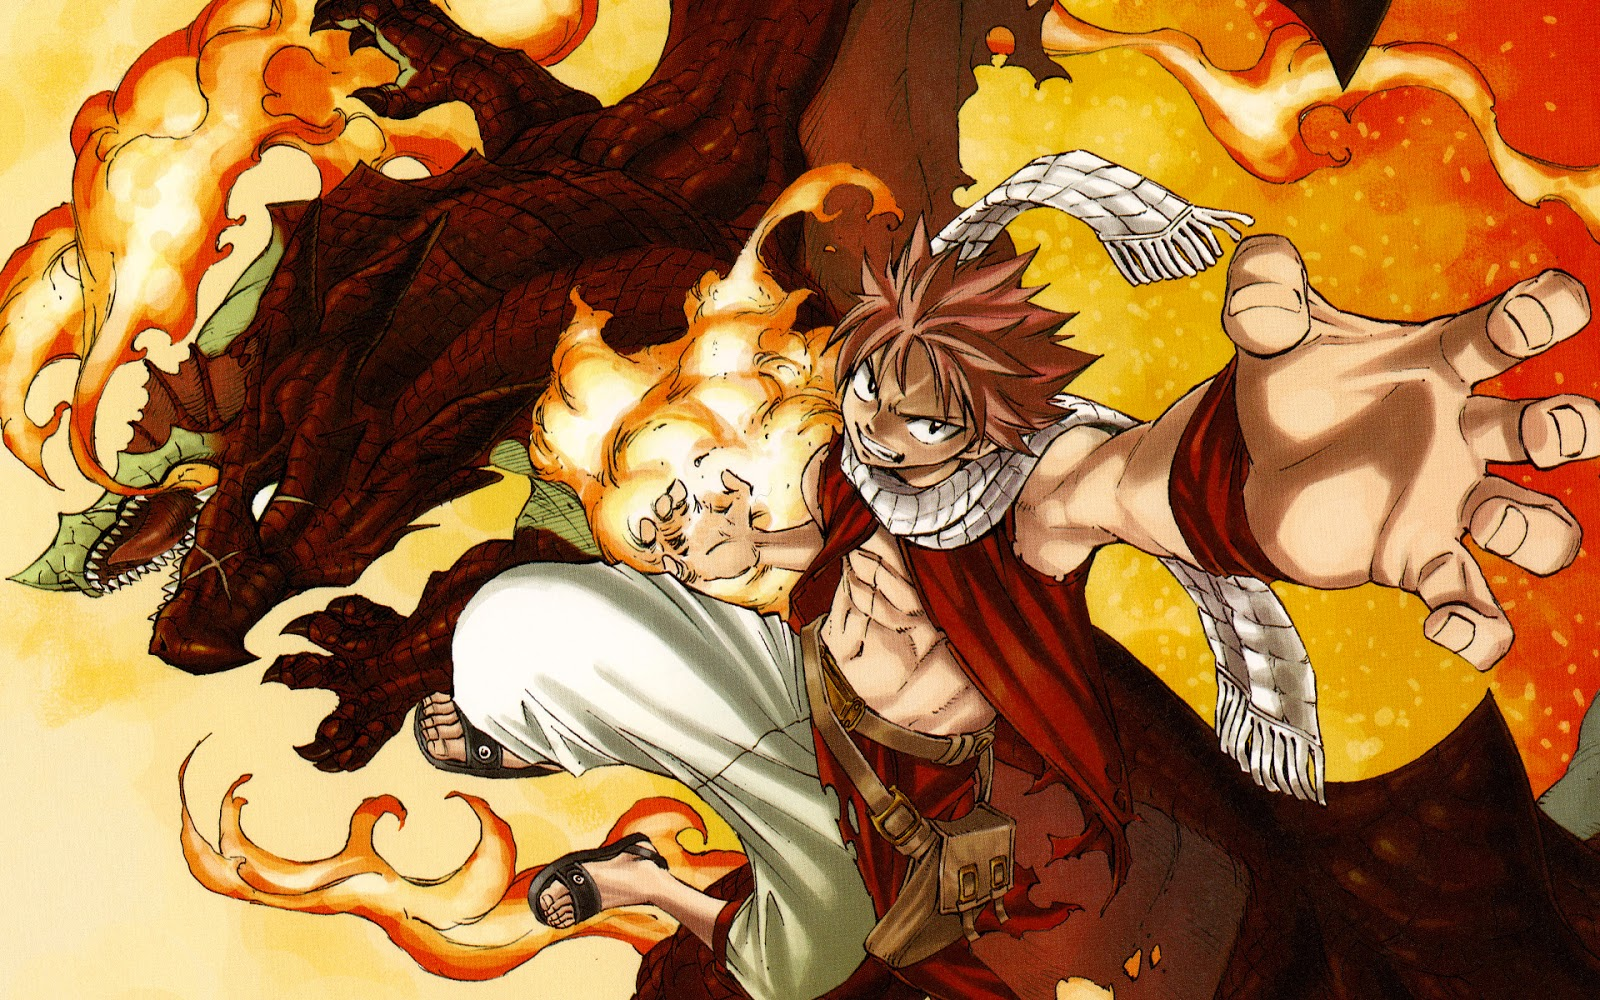 Fairy Tail Natsu and Igneel 84 HD Wallpaper 1600x1000